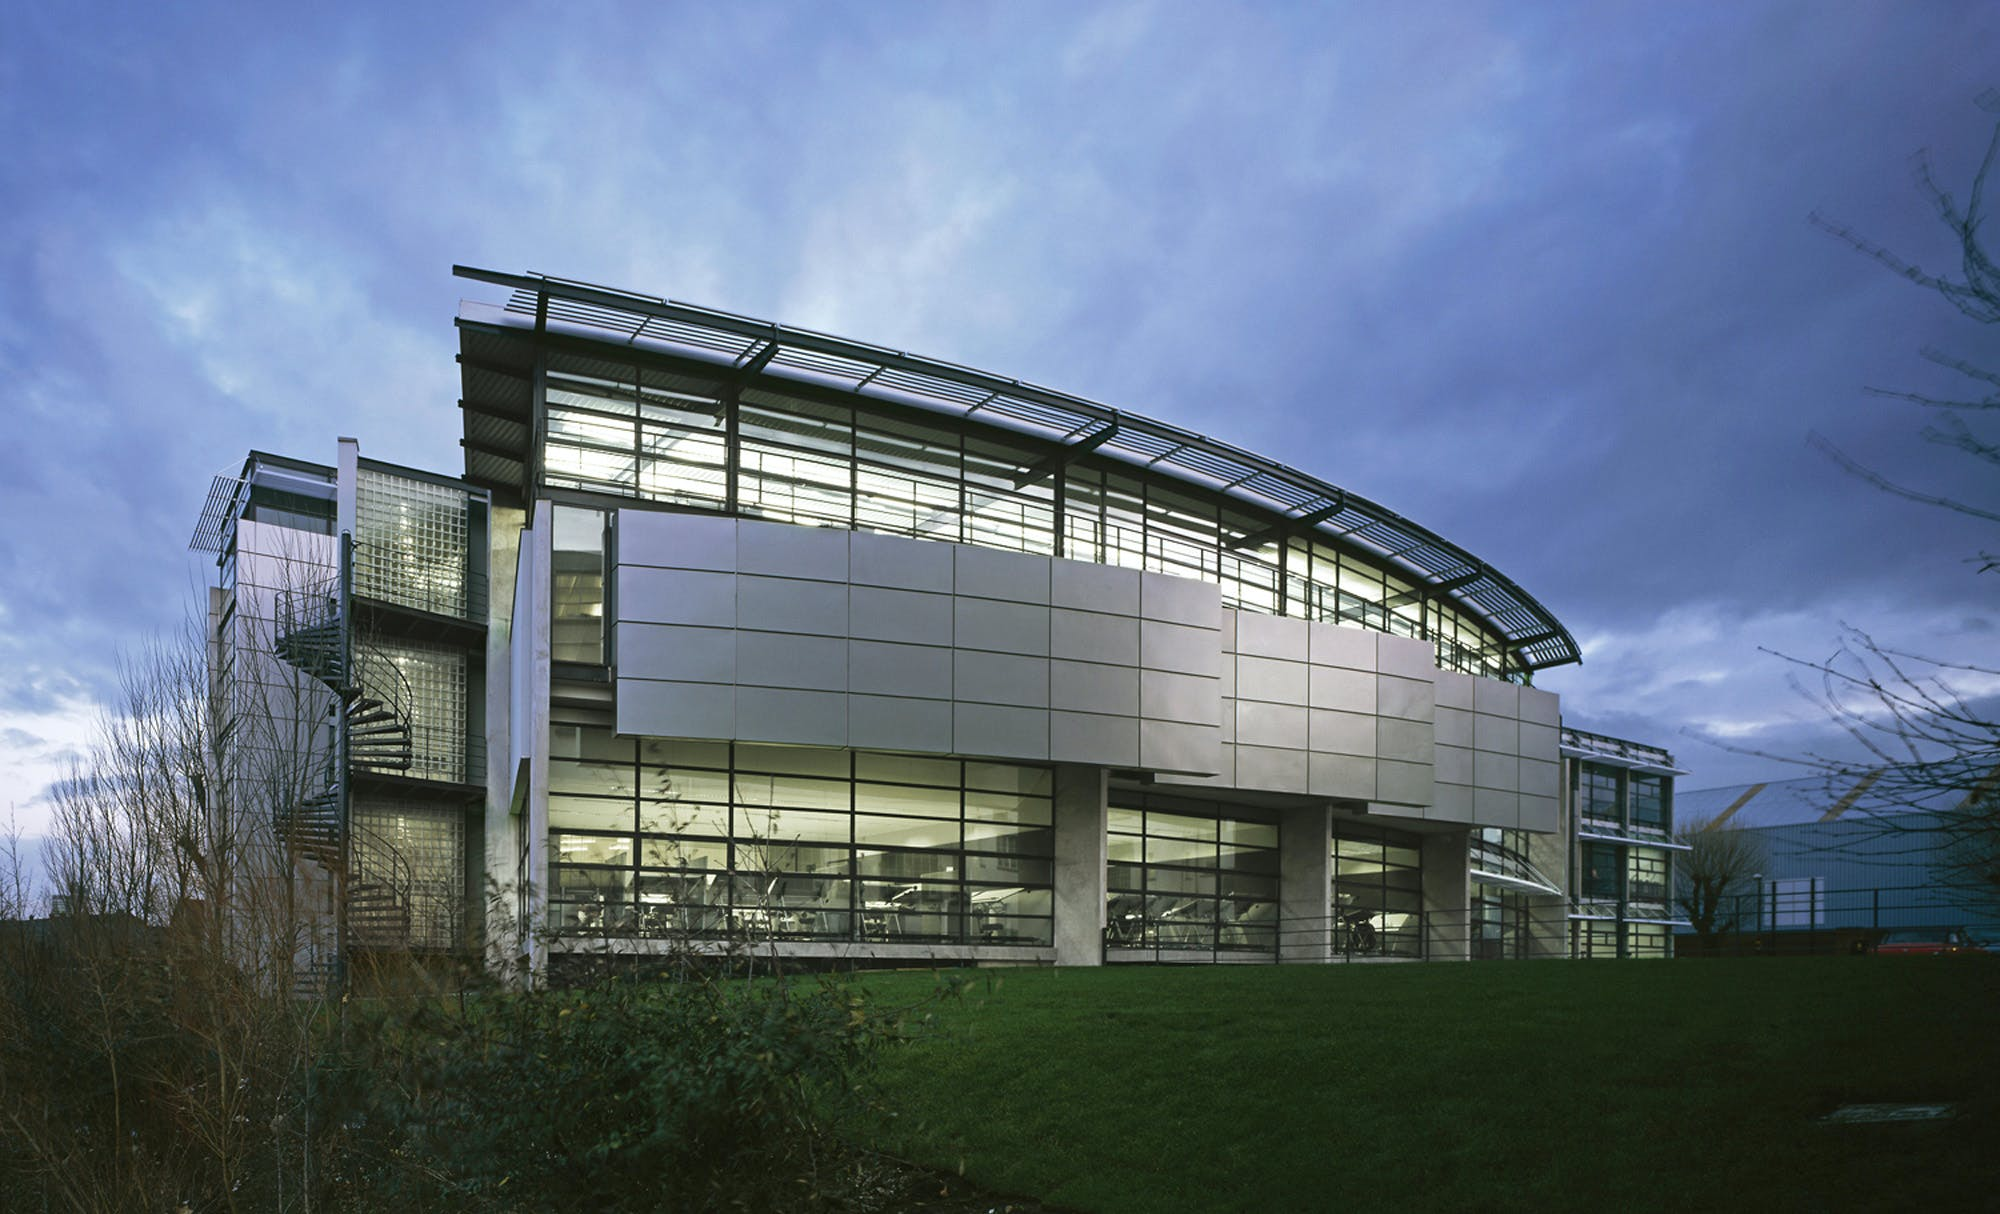 First Building Awarded The Stirling Prize Now Slated For A Primary